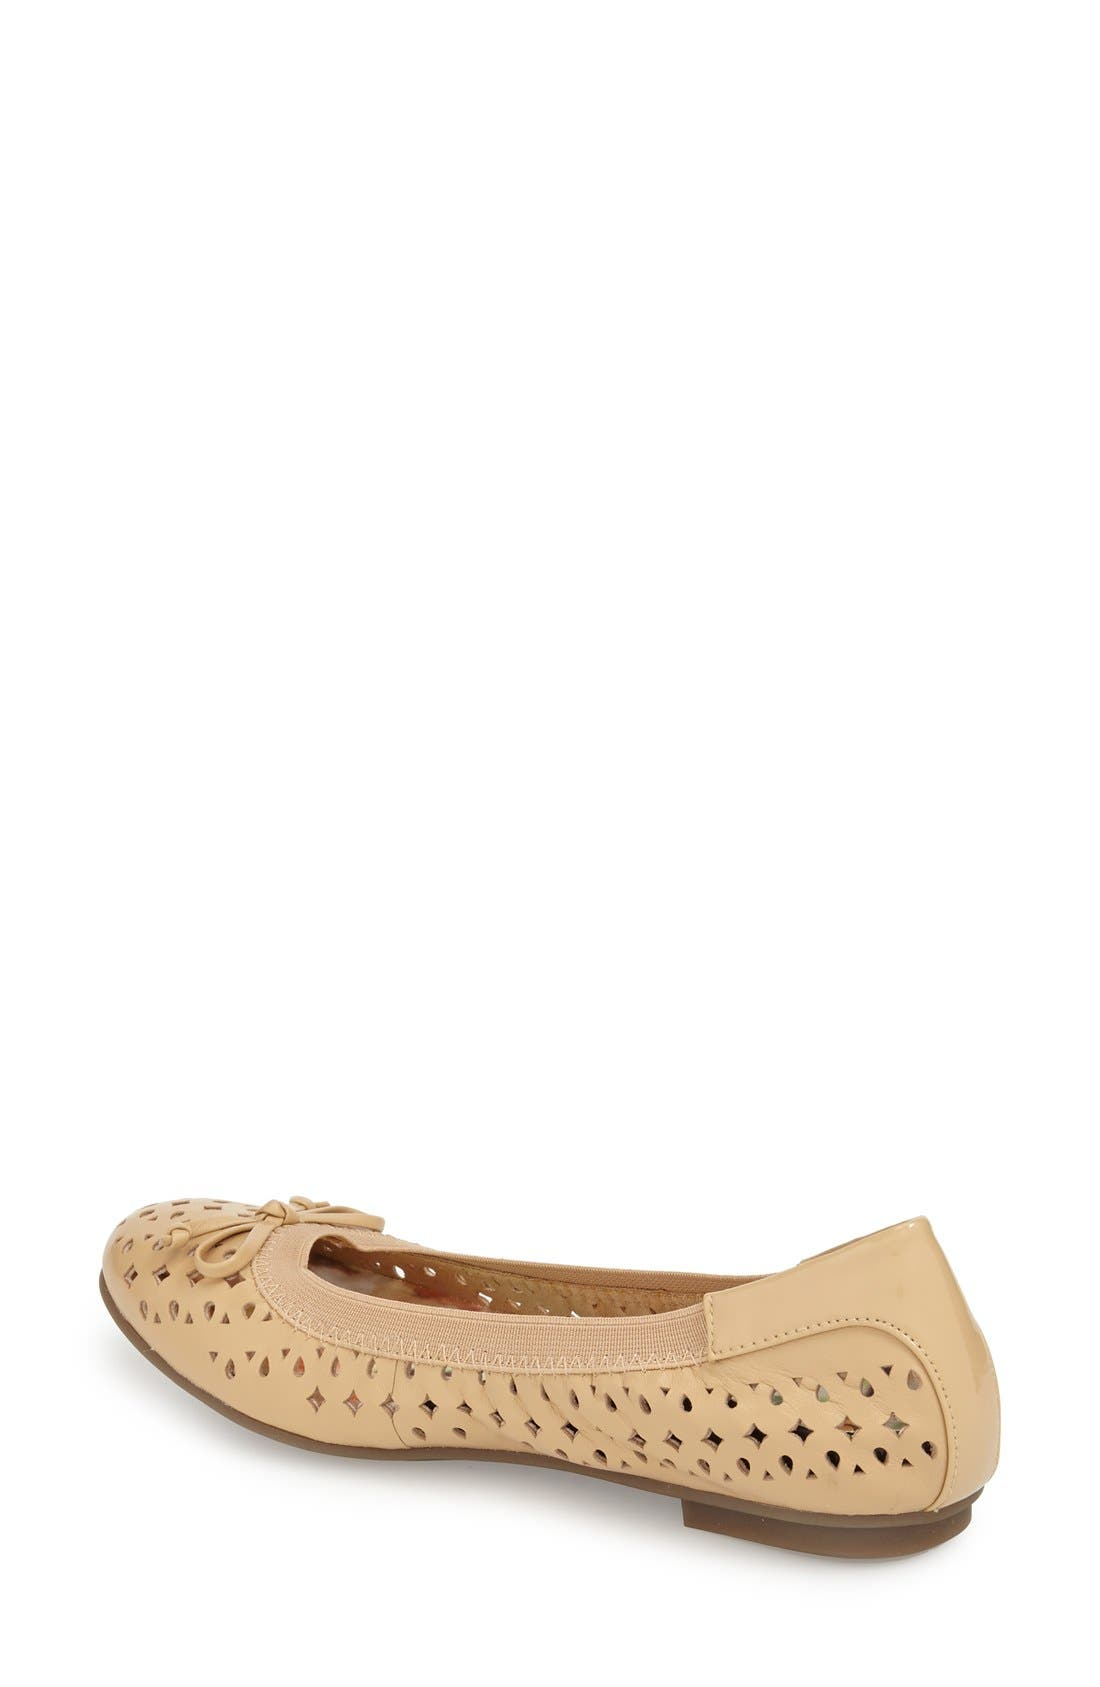 'Surin' Perforated Ballet Flat,                             Alternate thumbnail 9, color,